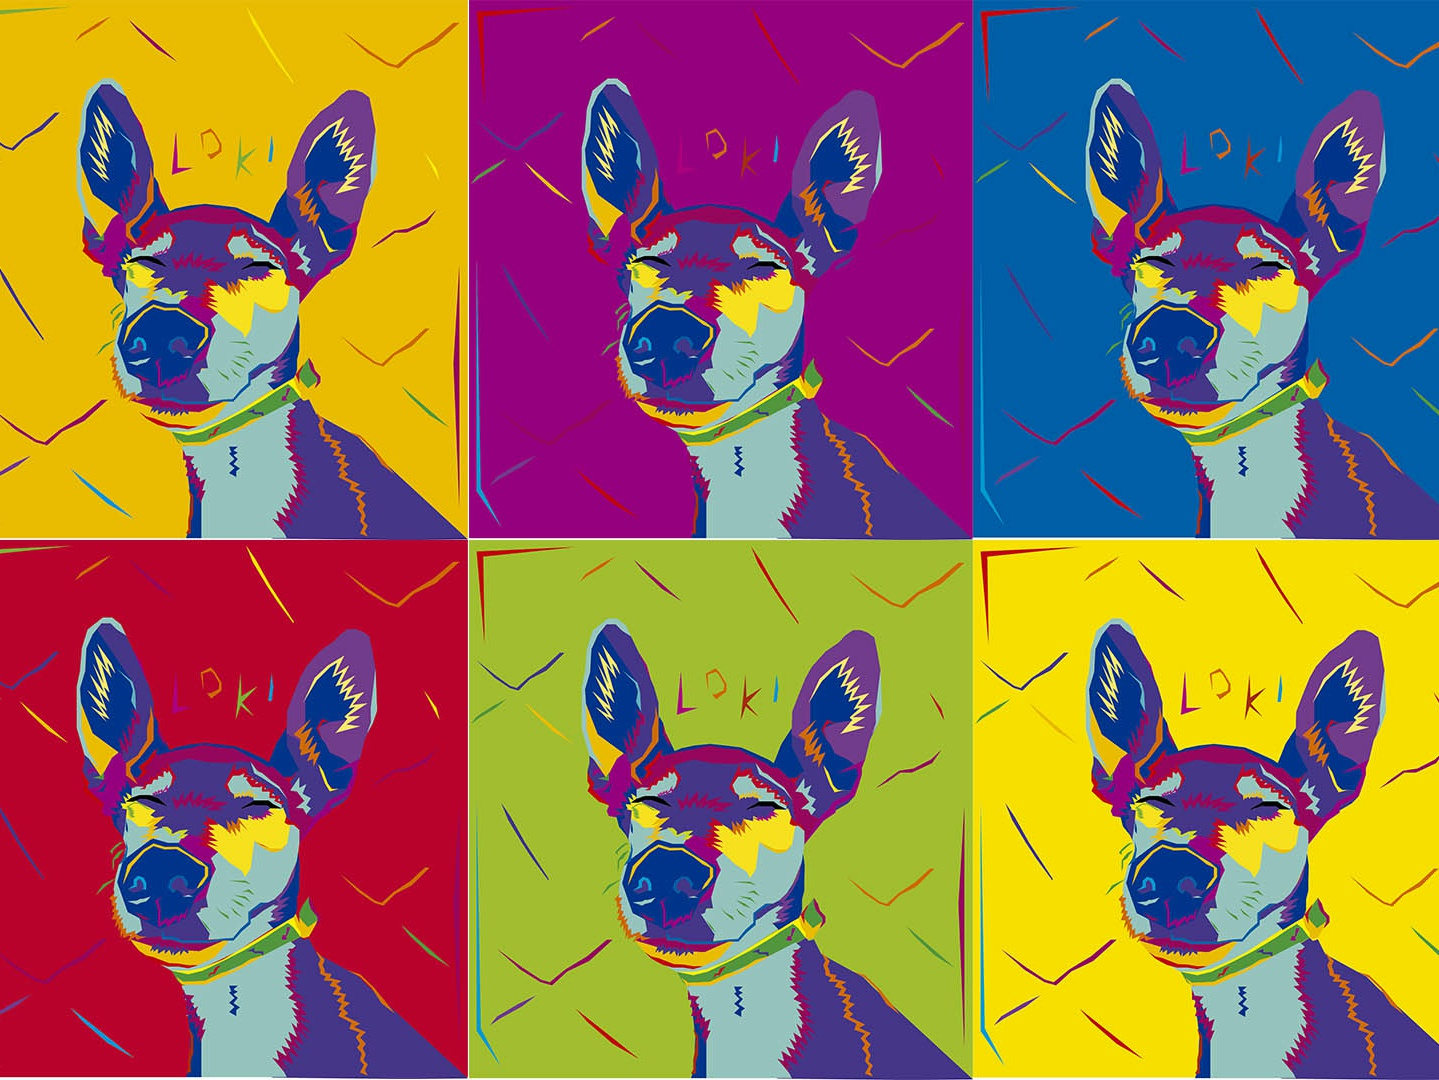 LokiPop relaxed popart wpap colour and lines dog art illustration design